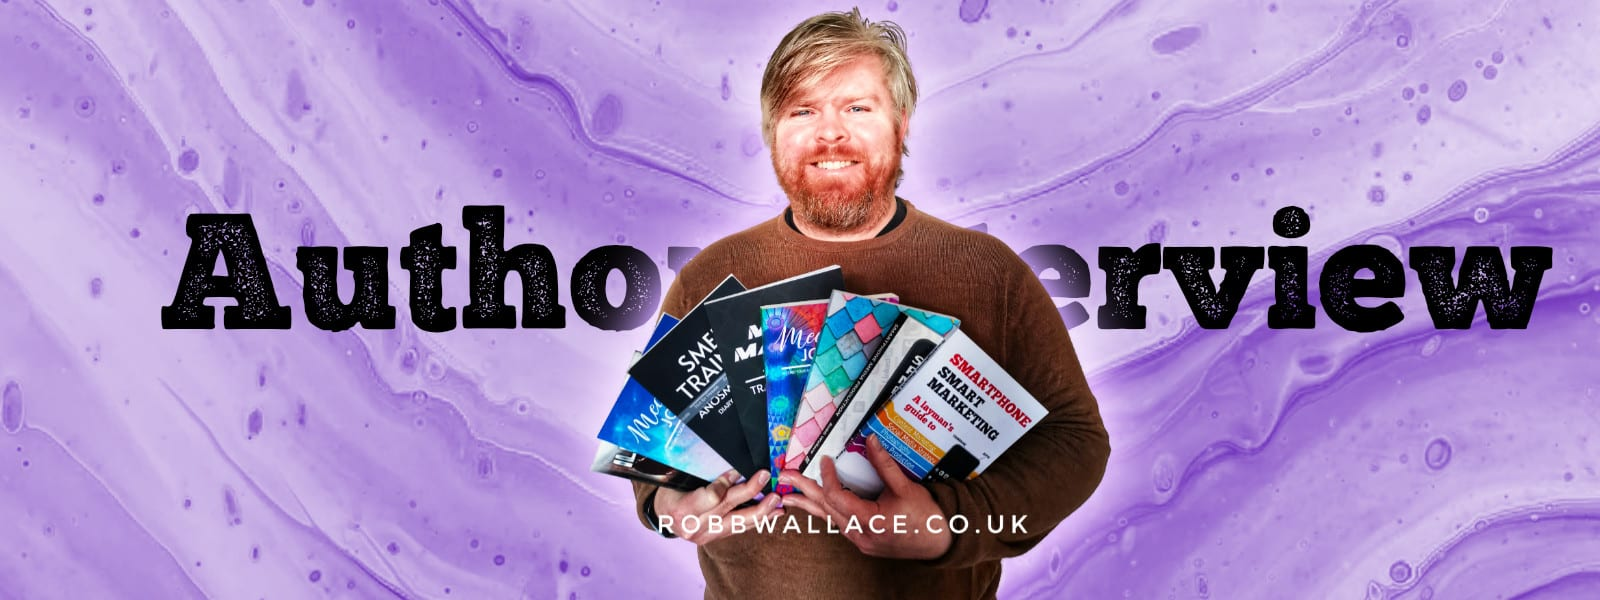 robb-wallace-author-interview